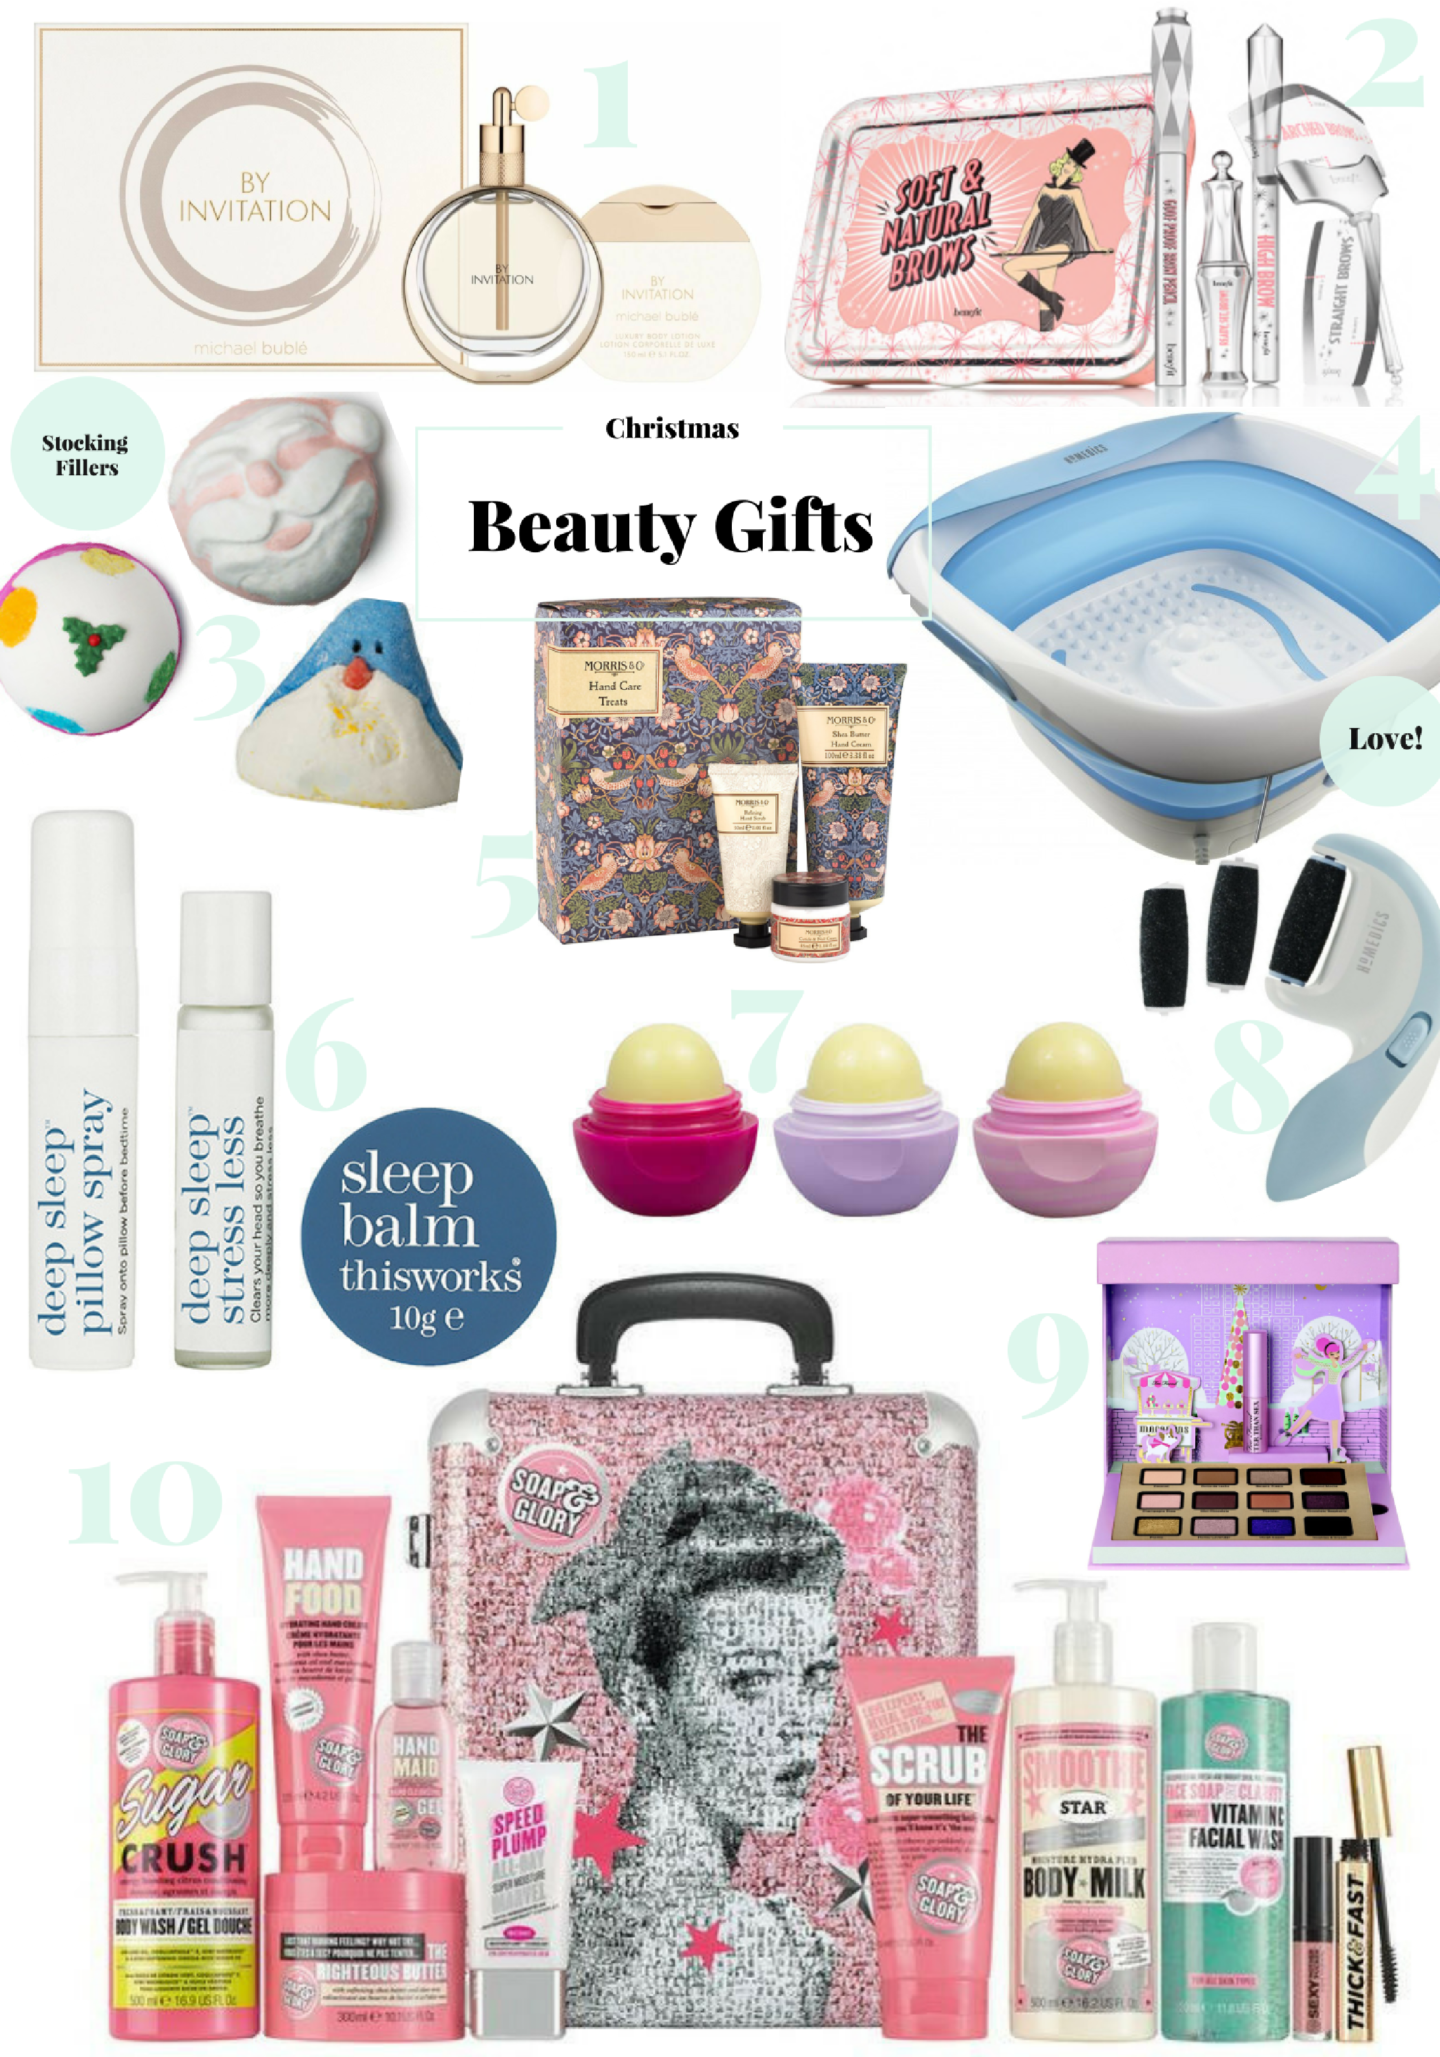 Christmas Shopping: Beauty Gifts